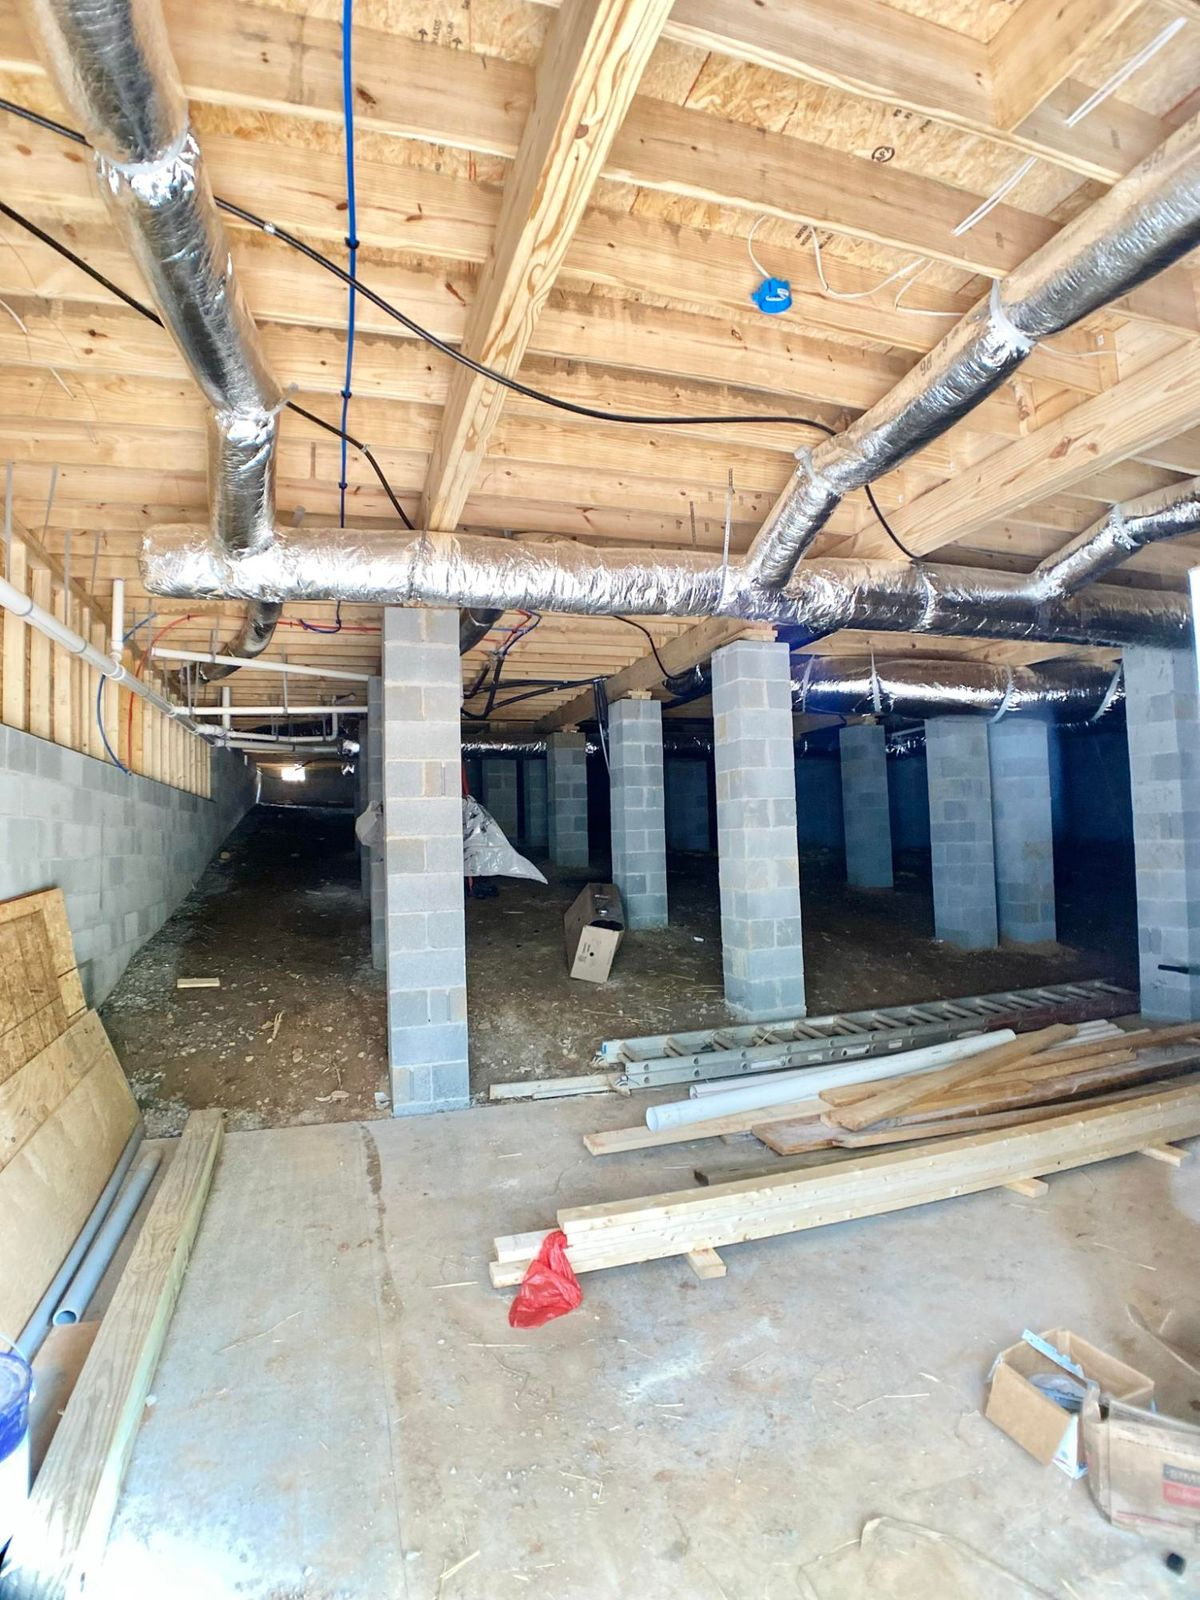 Storage area in Crawl space